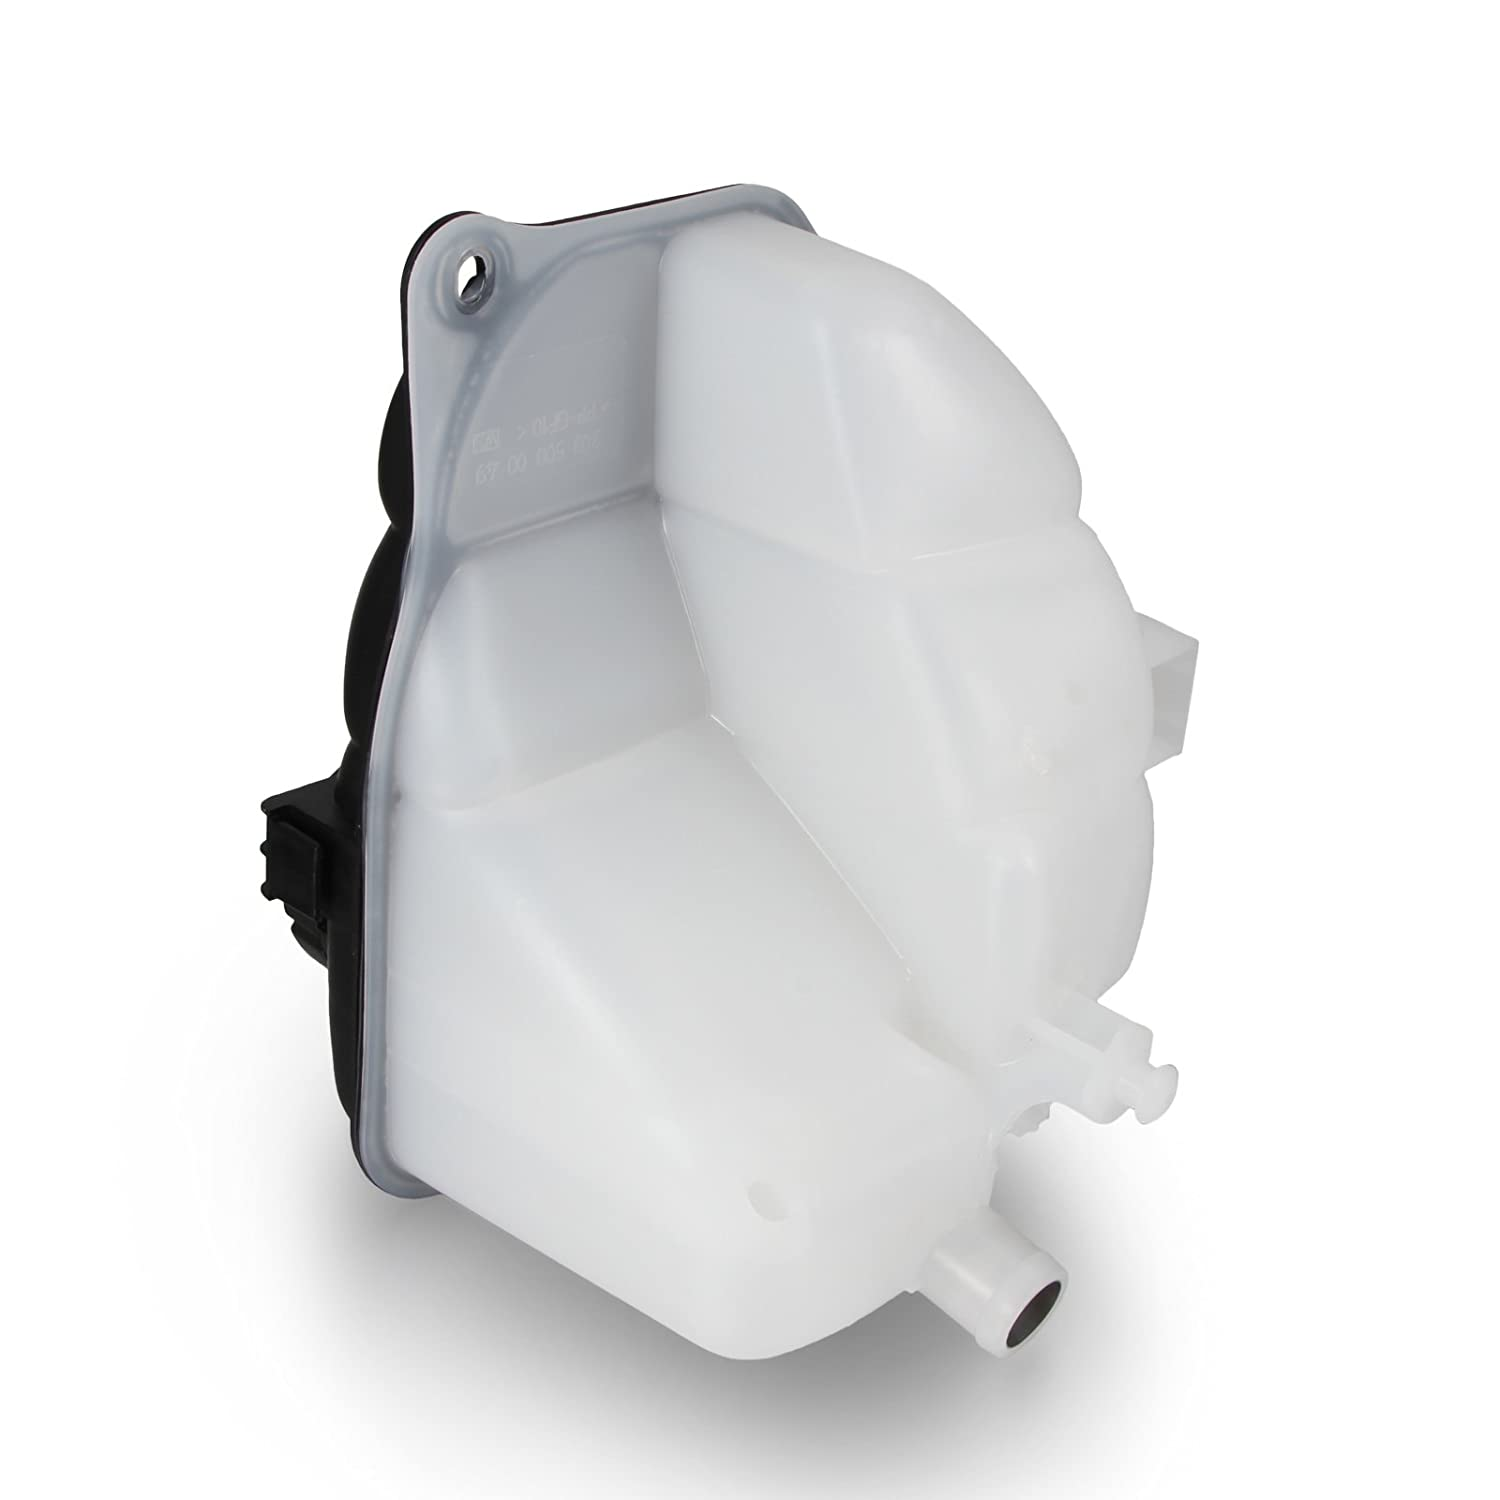 Overflow Recovery Expansion Tank 2035000049 For CLK A209 C209 C-Class W203 CL203 From Madlife Garage